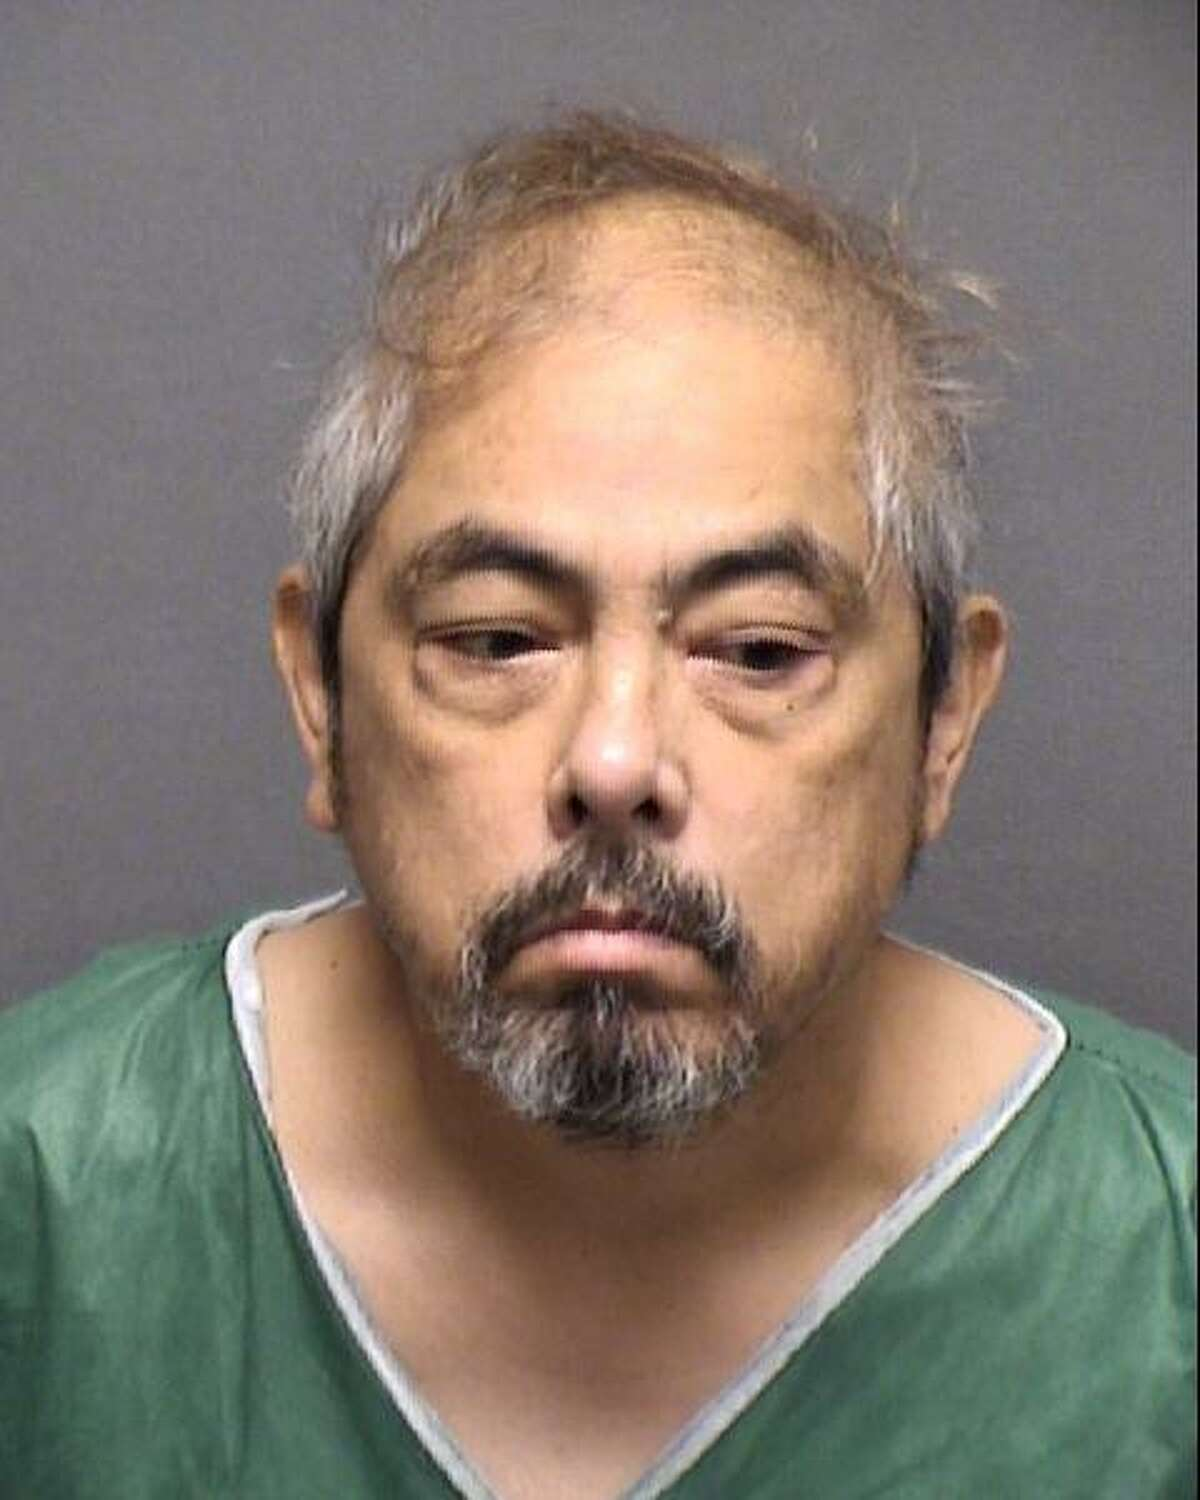 Lindsey Turiano, 58, is seen in a booking photo after he was arrested Wednesday Aug. 21, 2019, and charged with murder in the death of his mother, 89-year-old Norma Woods.